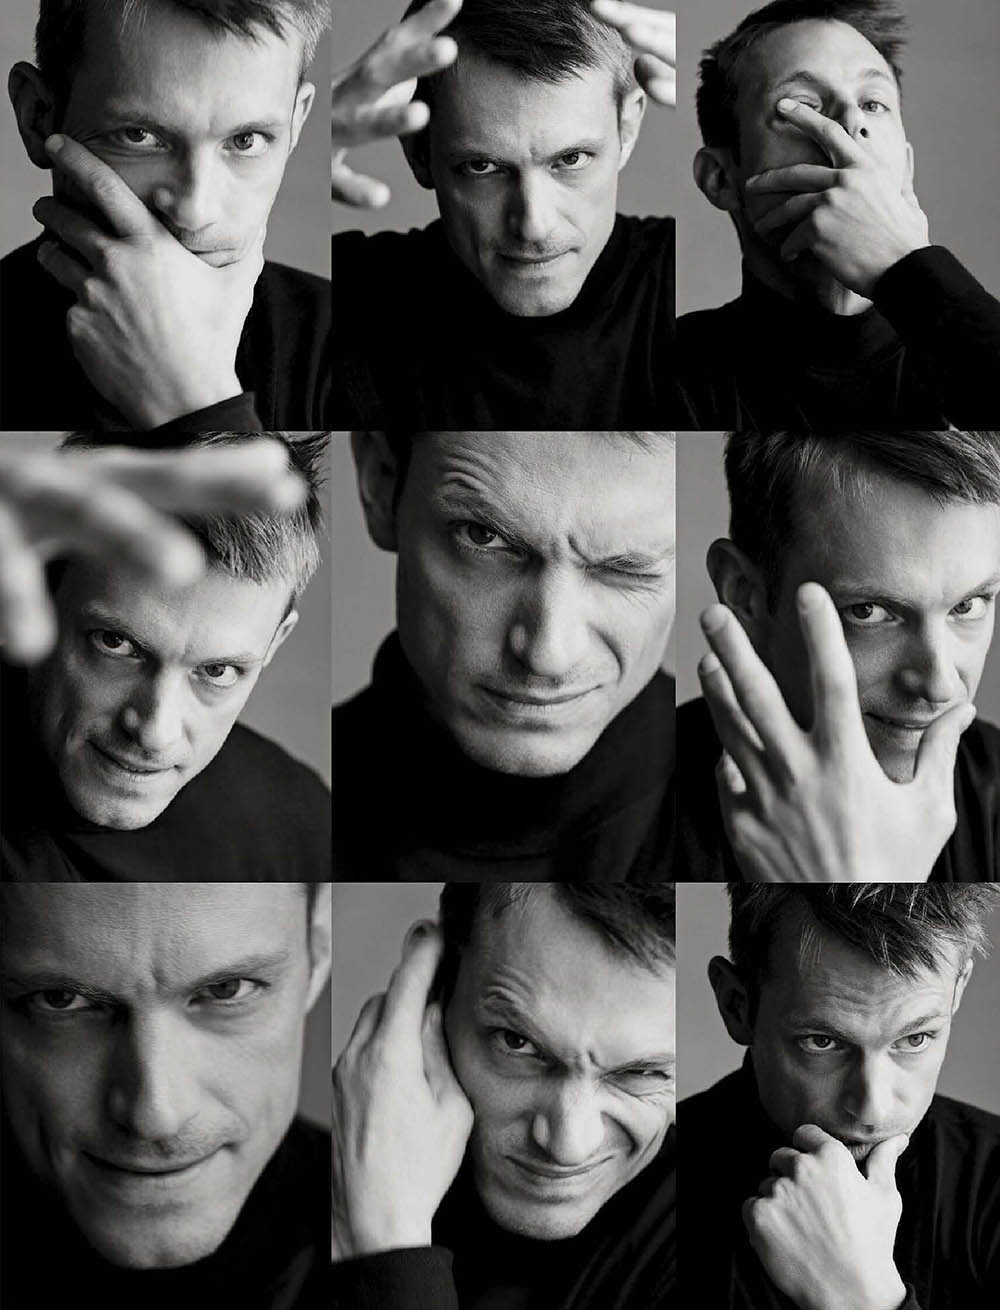 Joel Kinnaman covers L'Uomo Vogue May 2019 by Sølve Sundsbø